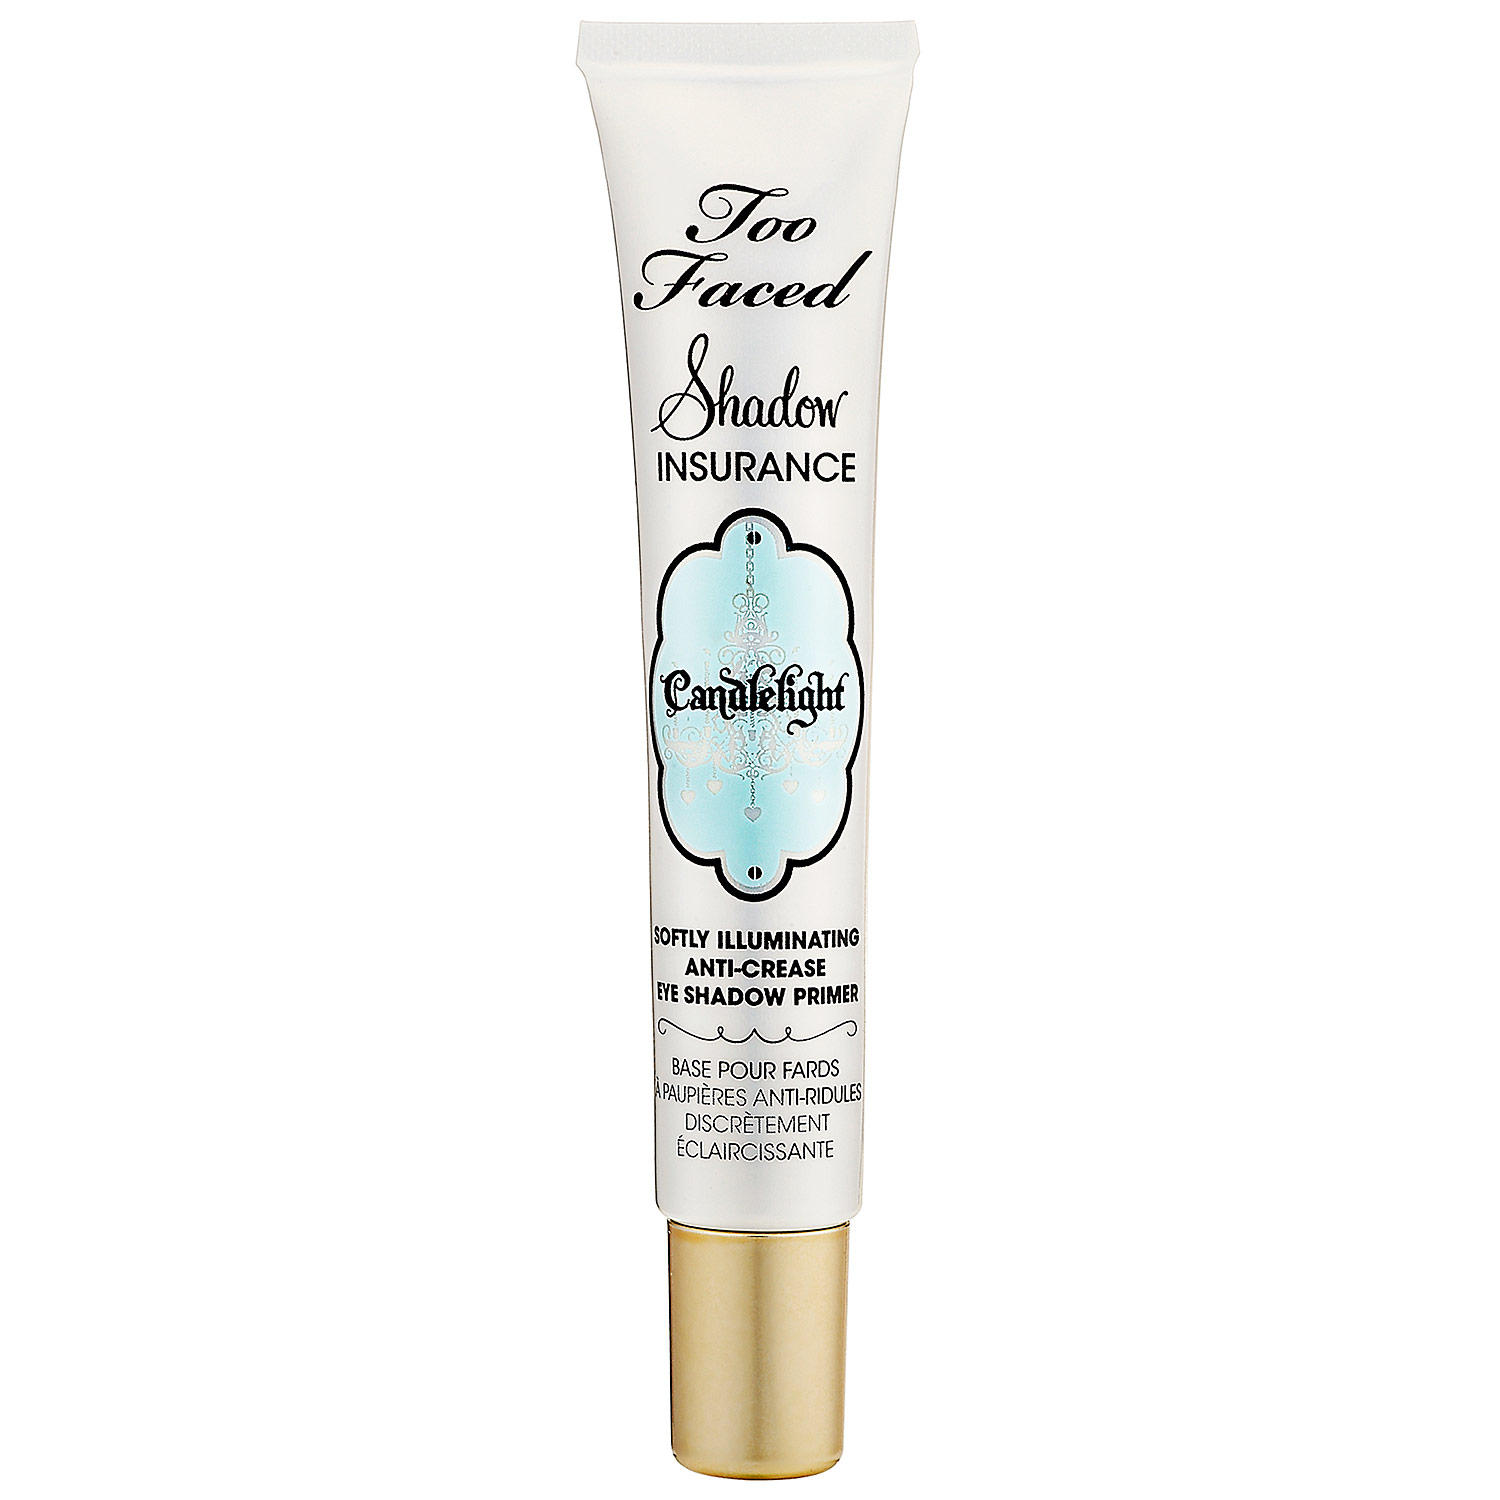 Too Faced Shadow Insurance Anti-Crease Eyeshadow Primer Candlelight